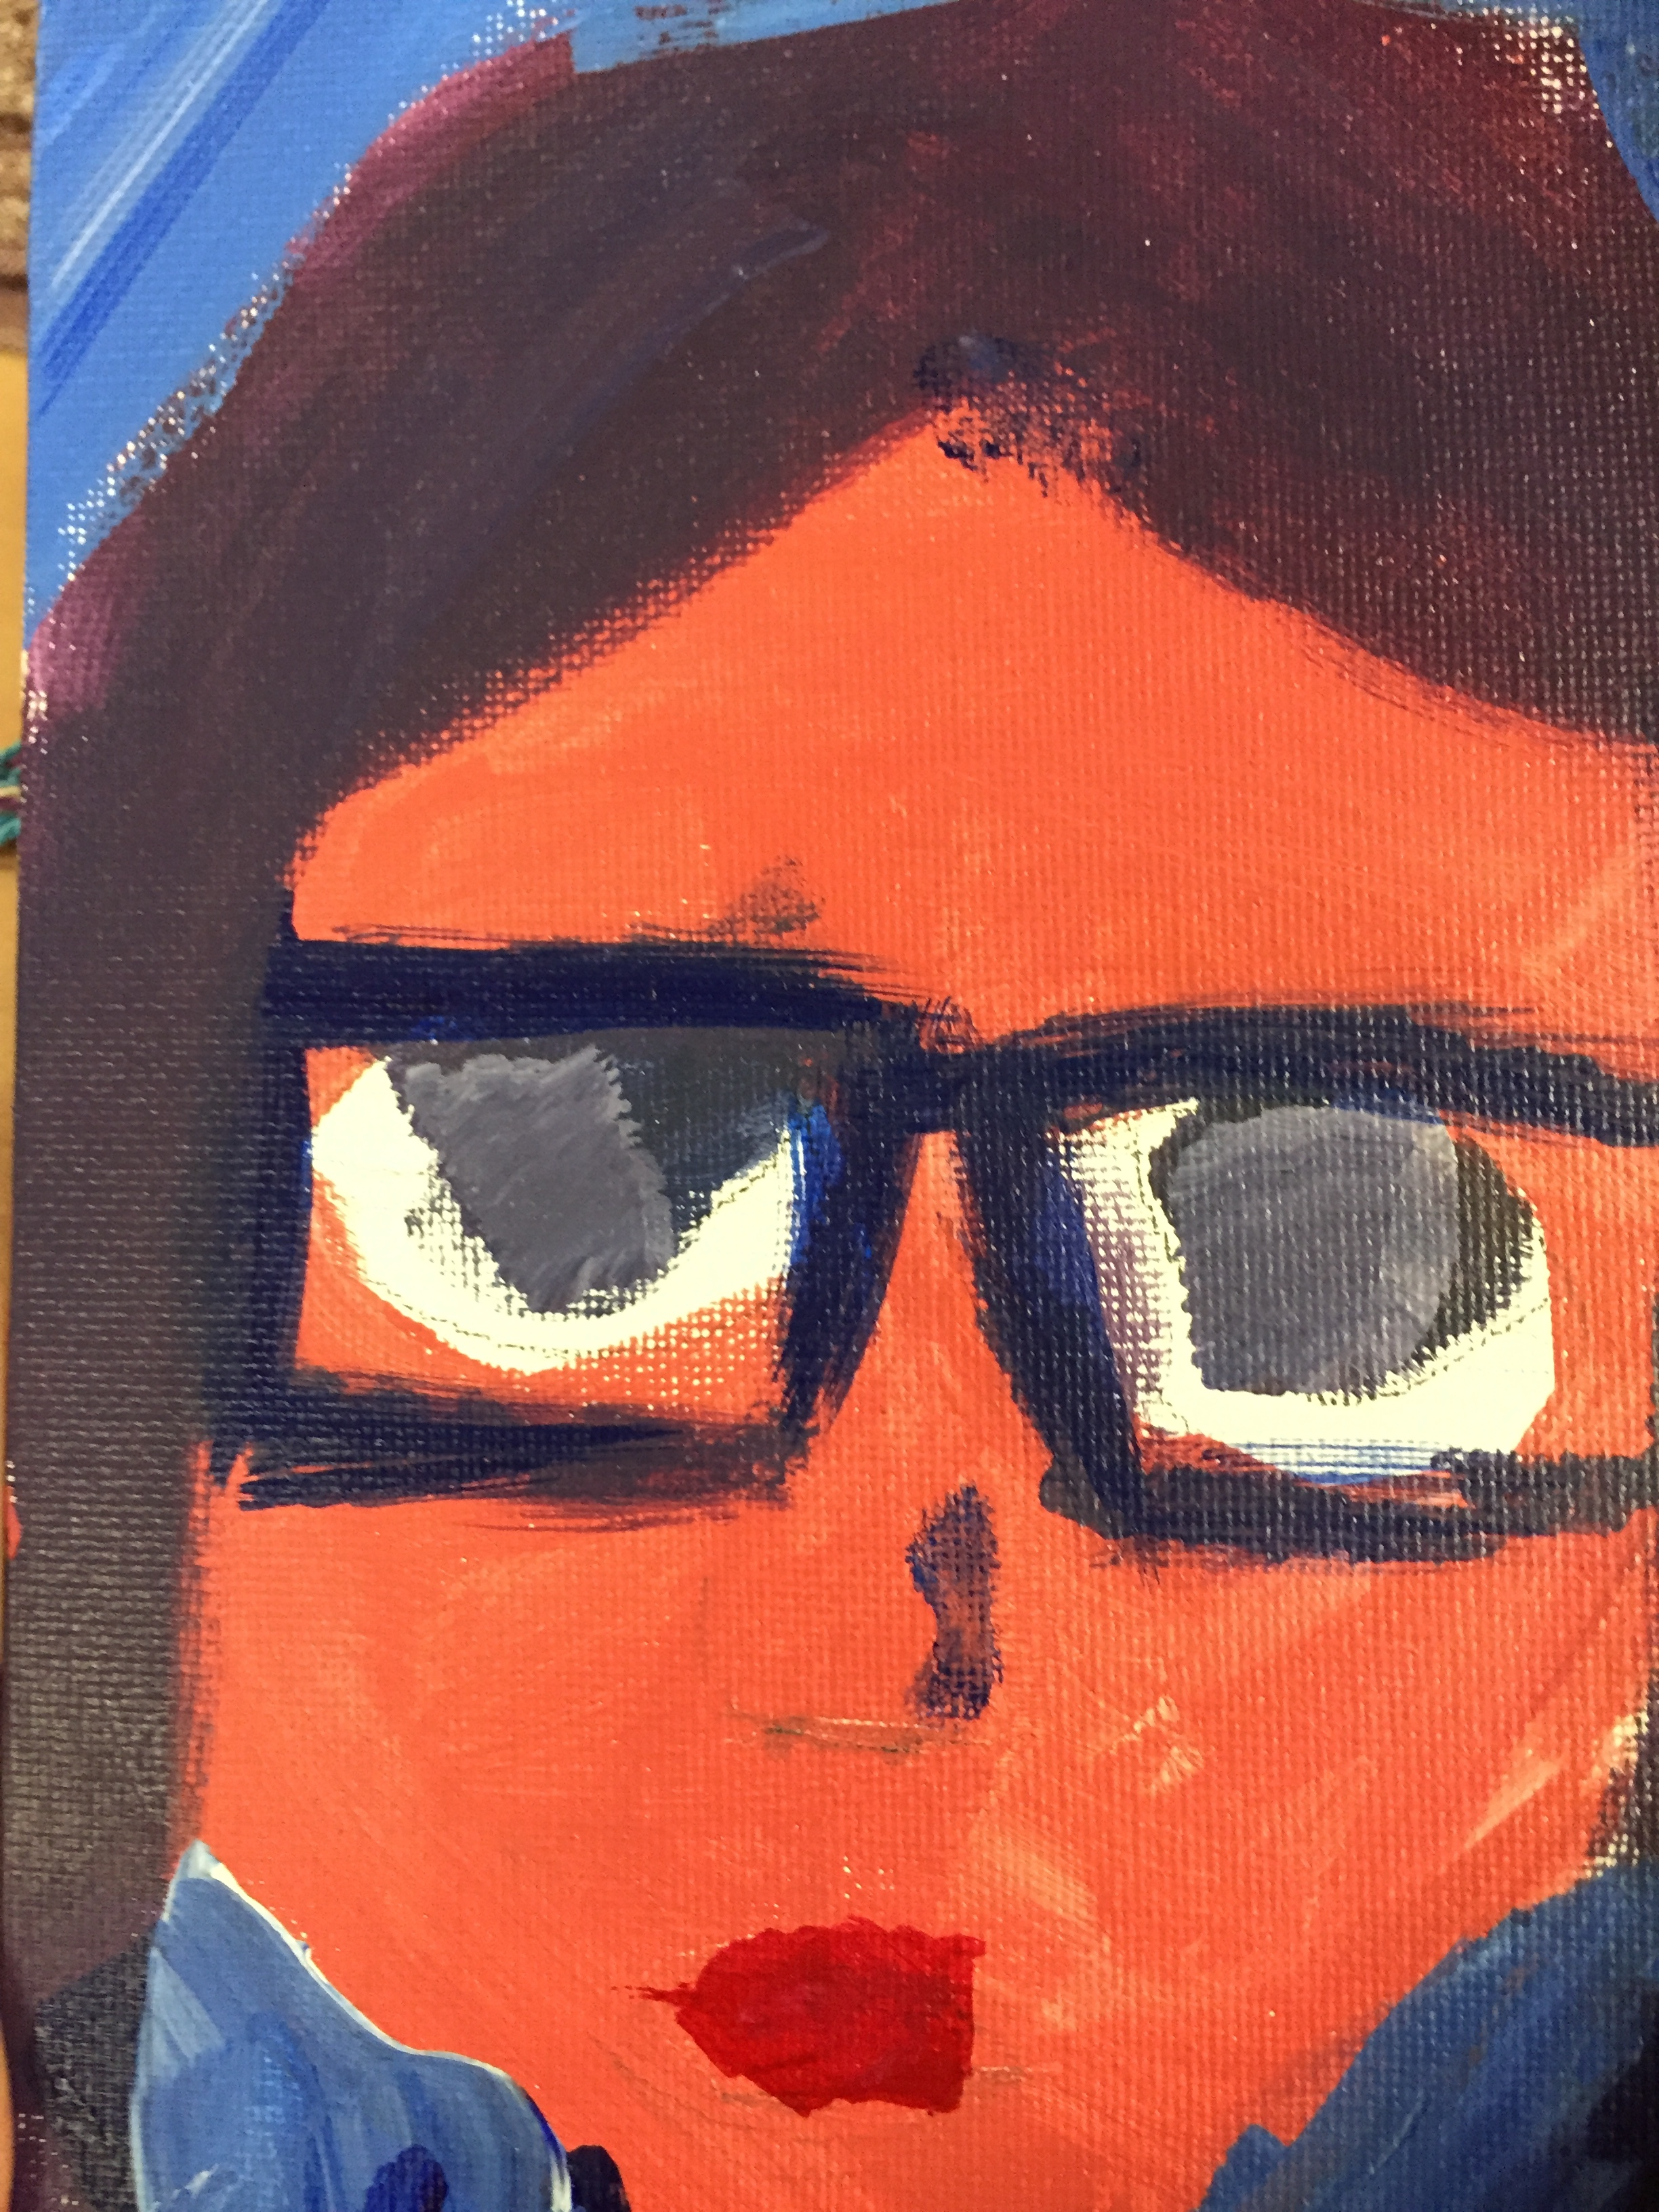 Selfies And Self   A fun way to take a youthful trend and create great art! Learners play with color, proportion and design.